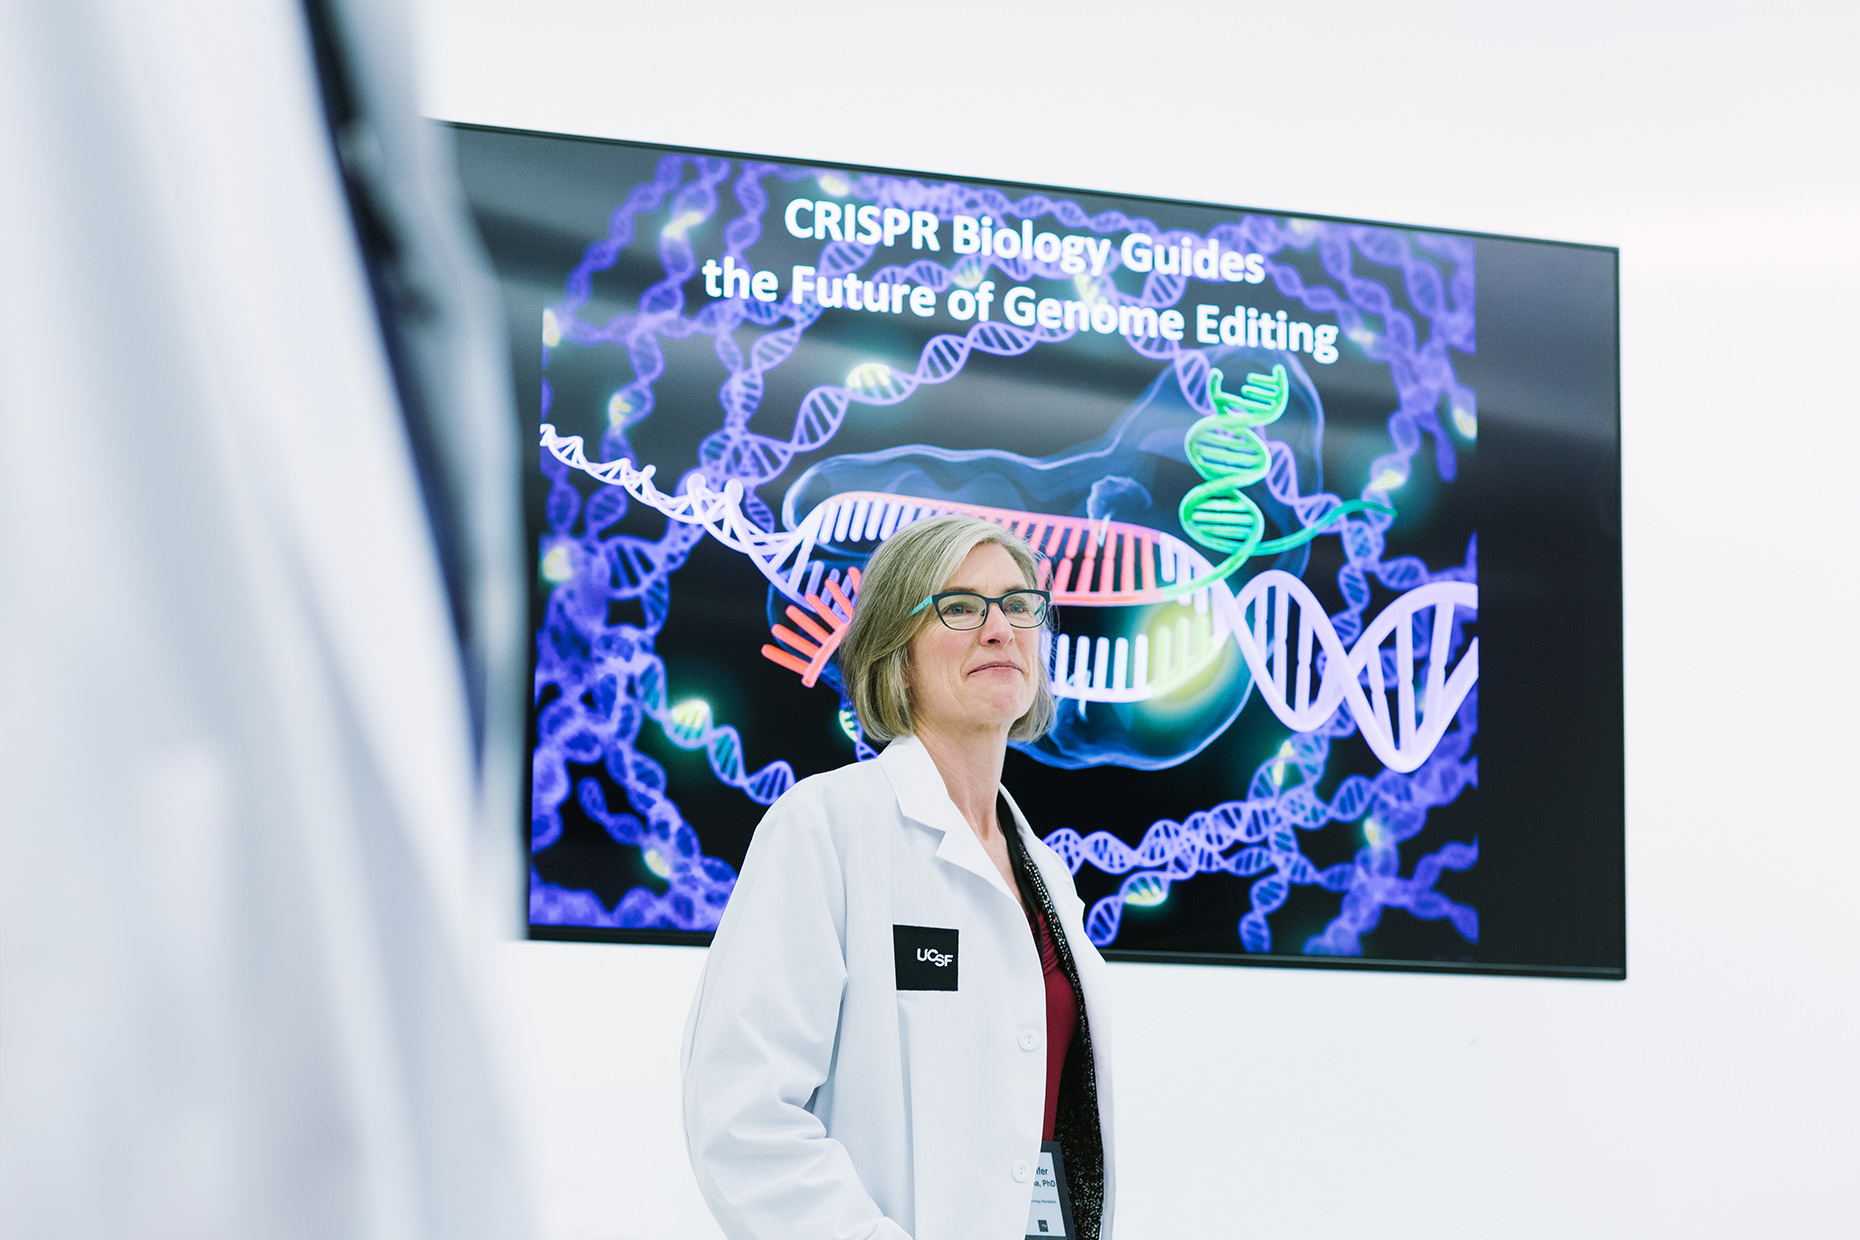 Jennifer_Doudna_UCSF_Portrait_Scientist